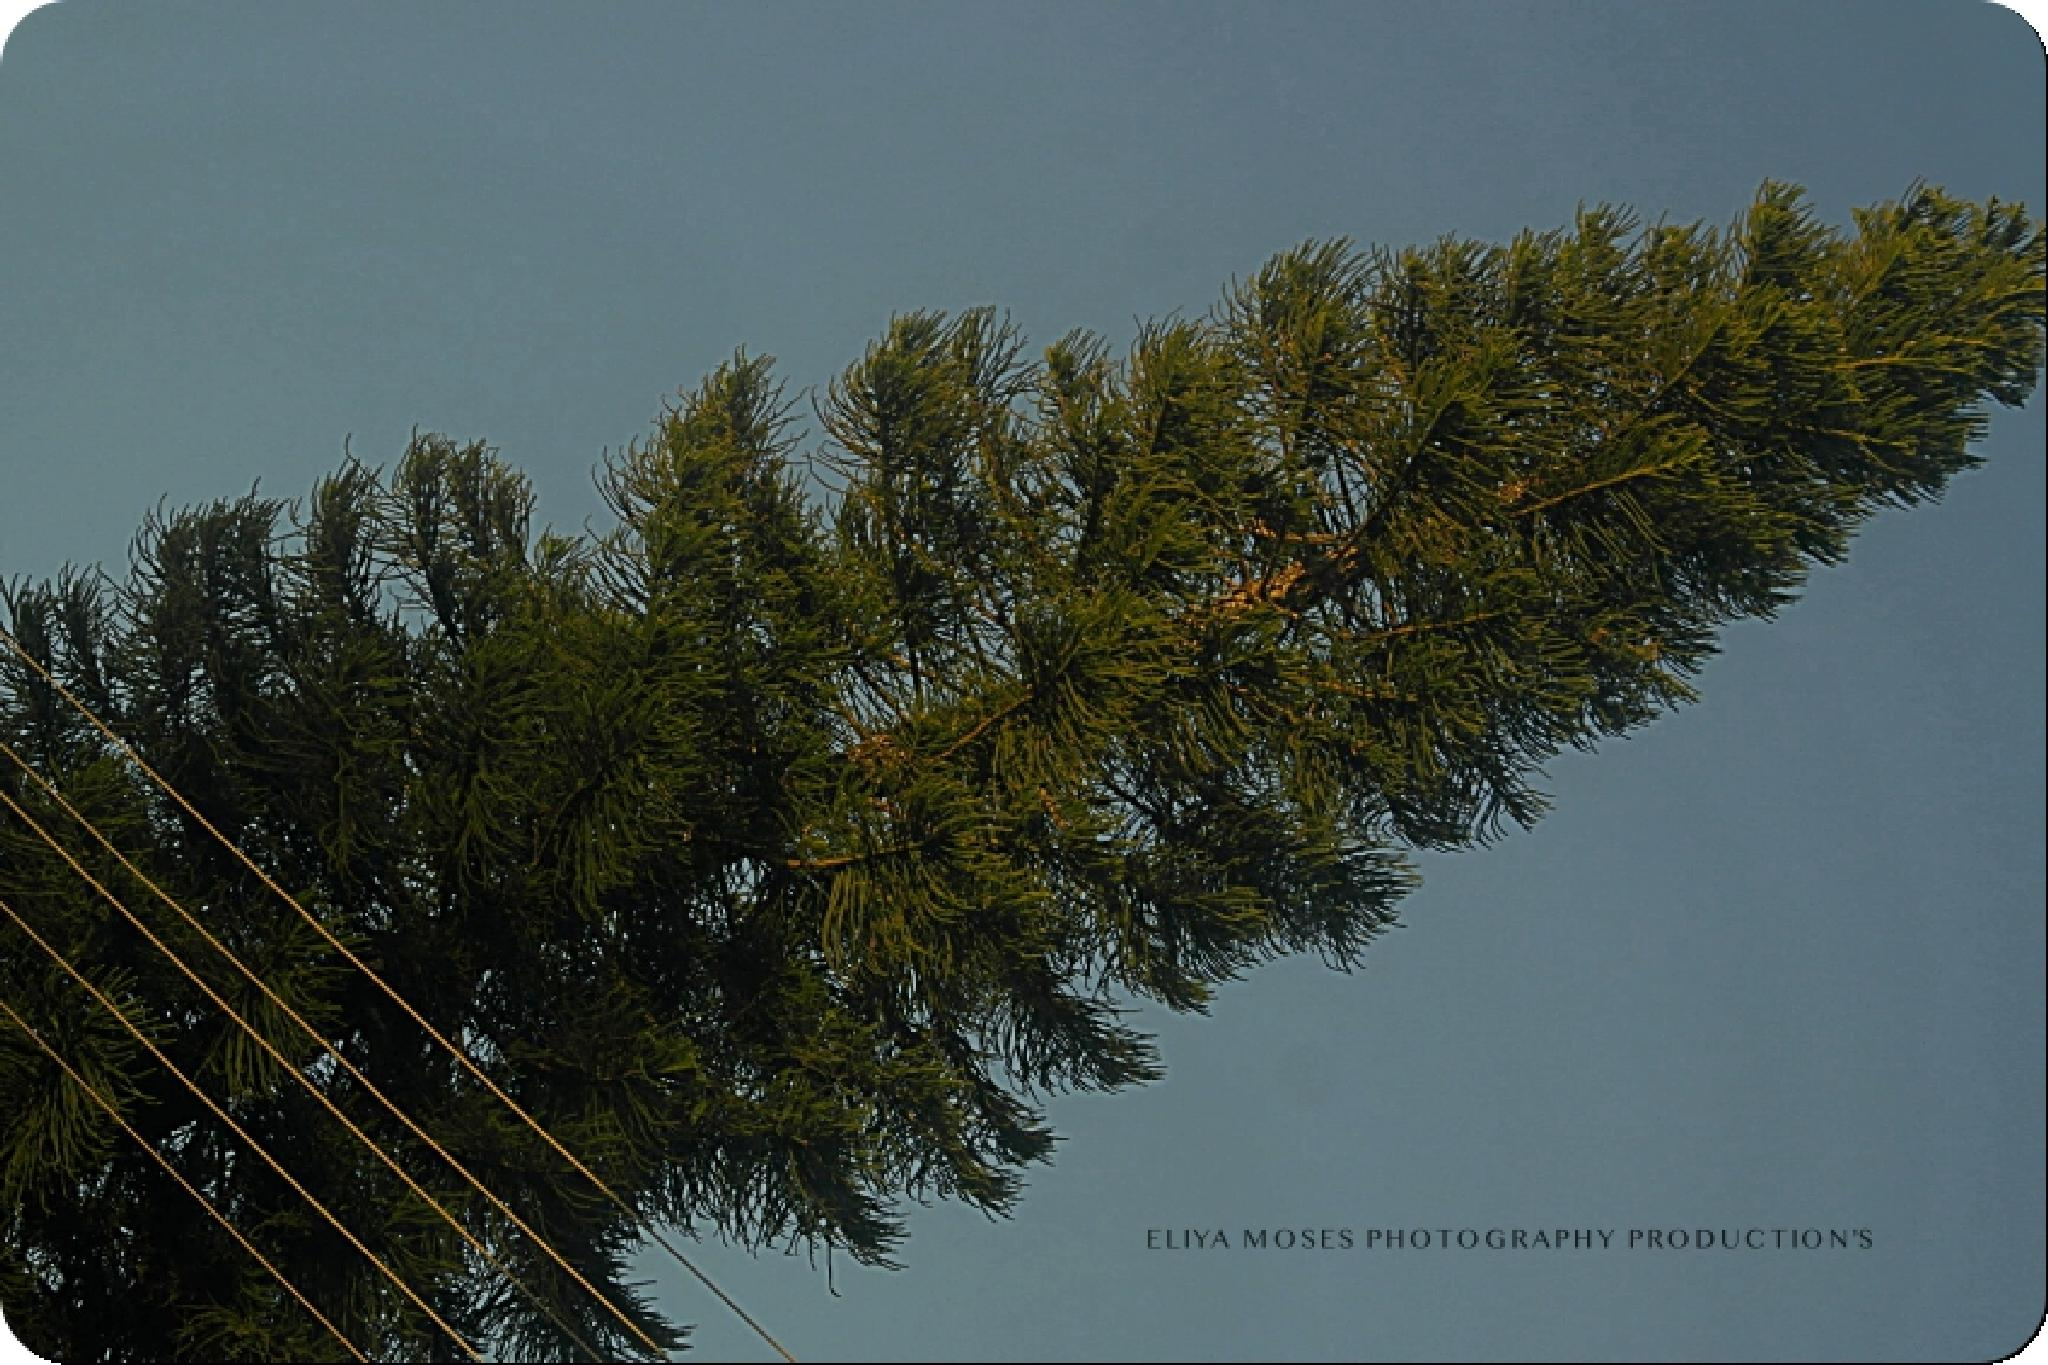 Untitled by Eliya.M. Moses